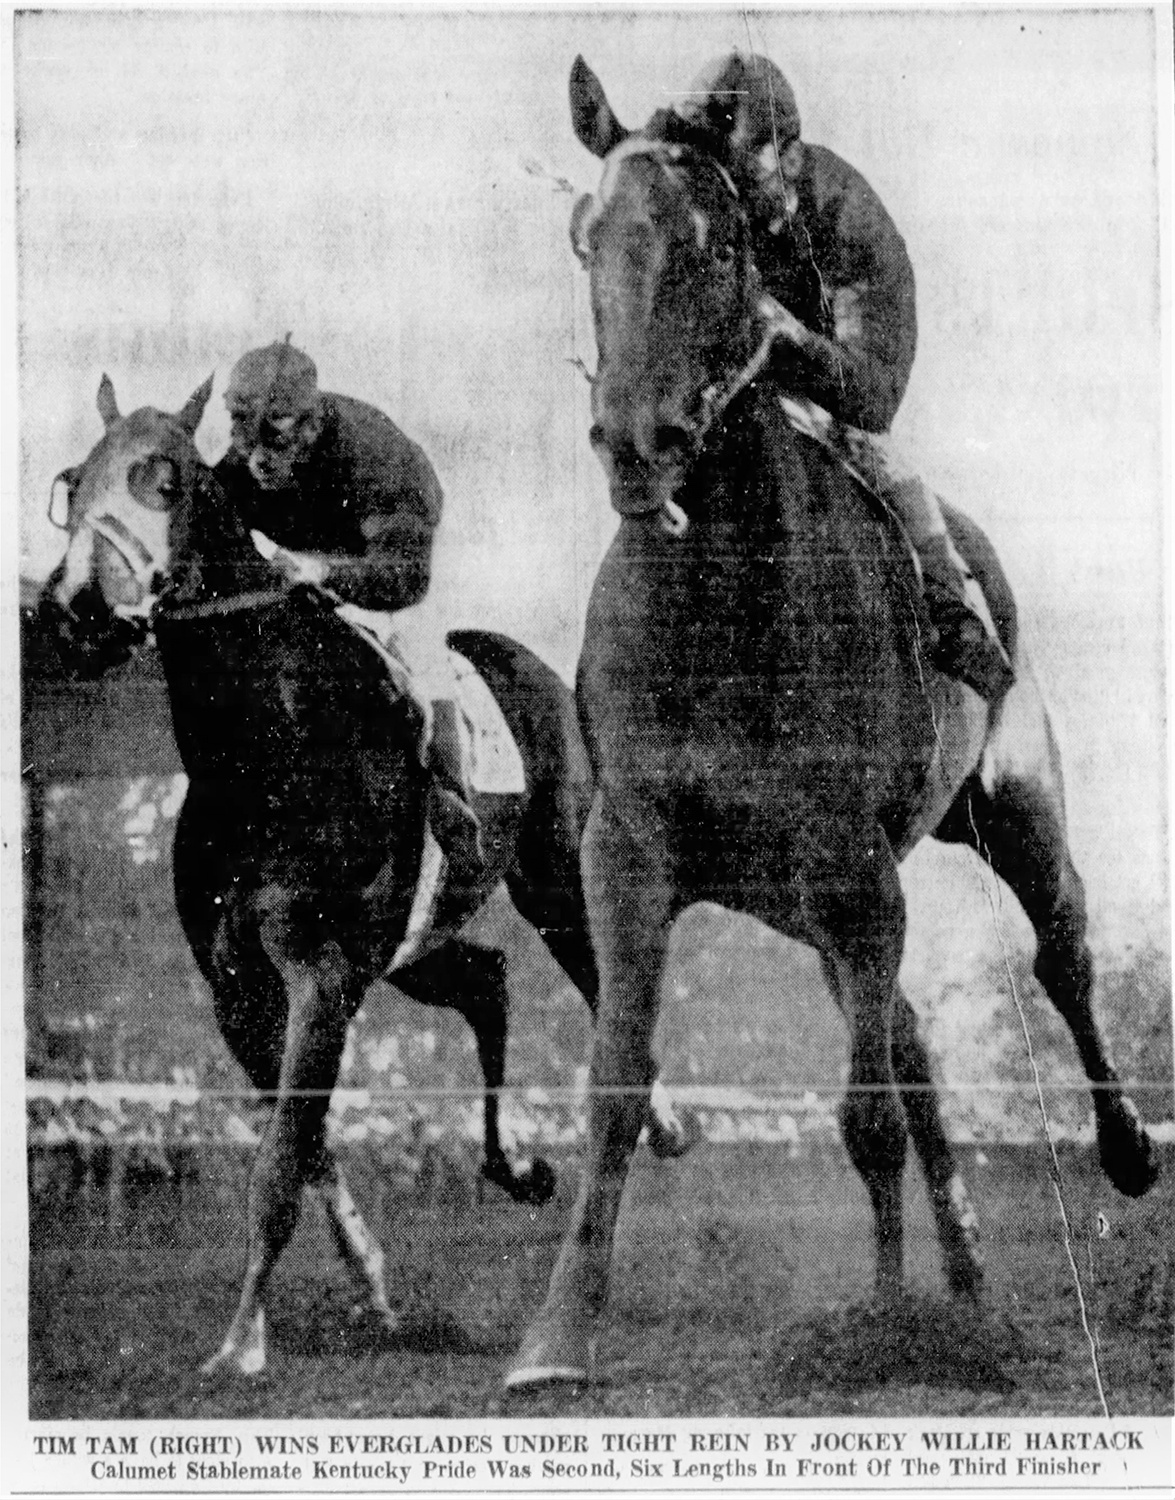 Tim Tam with Bill Hartack up, winning the Everglades Stakes, February 16, 1958. Hartack was looking forward to another record-breaking year at the beginning of 1958. From the Miami News, February 16, 1958.